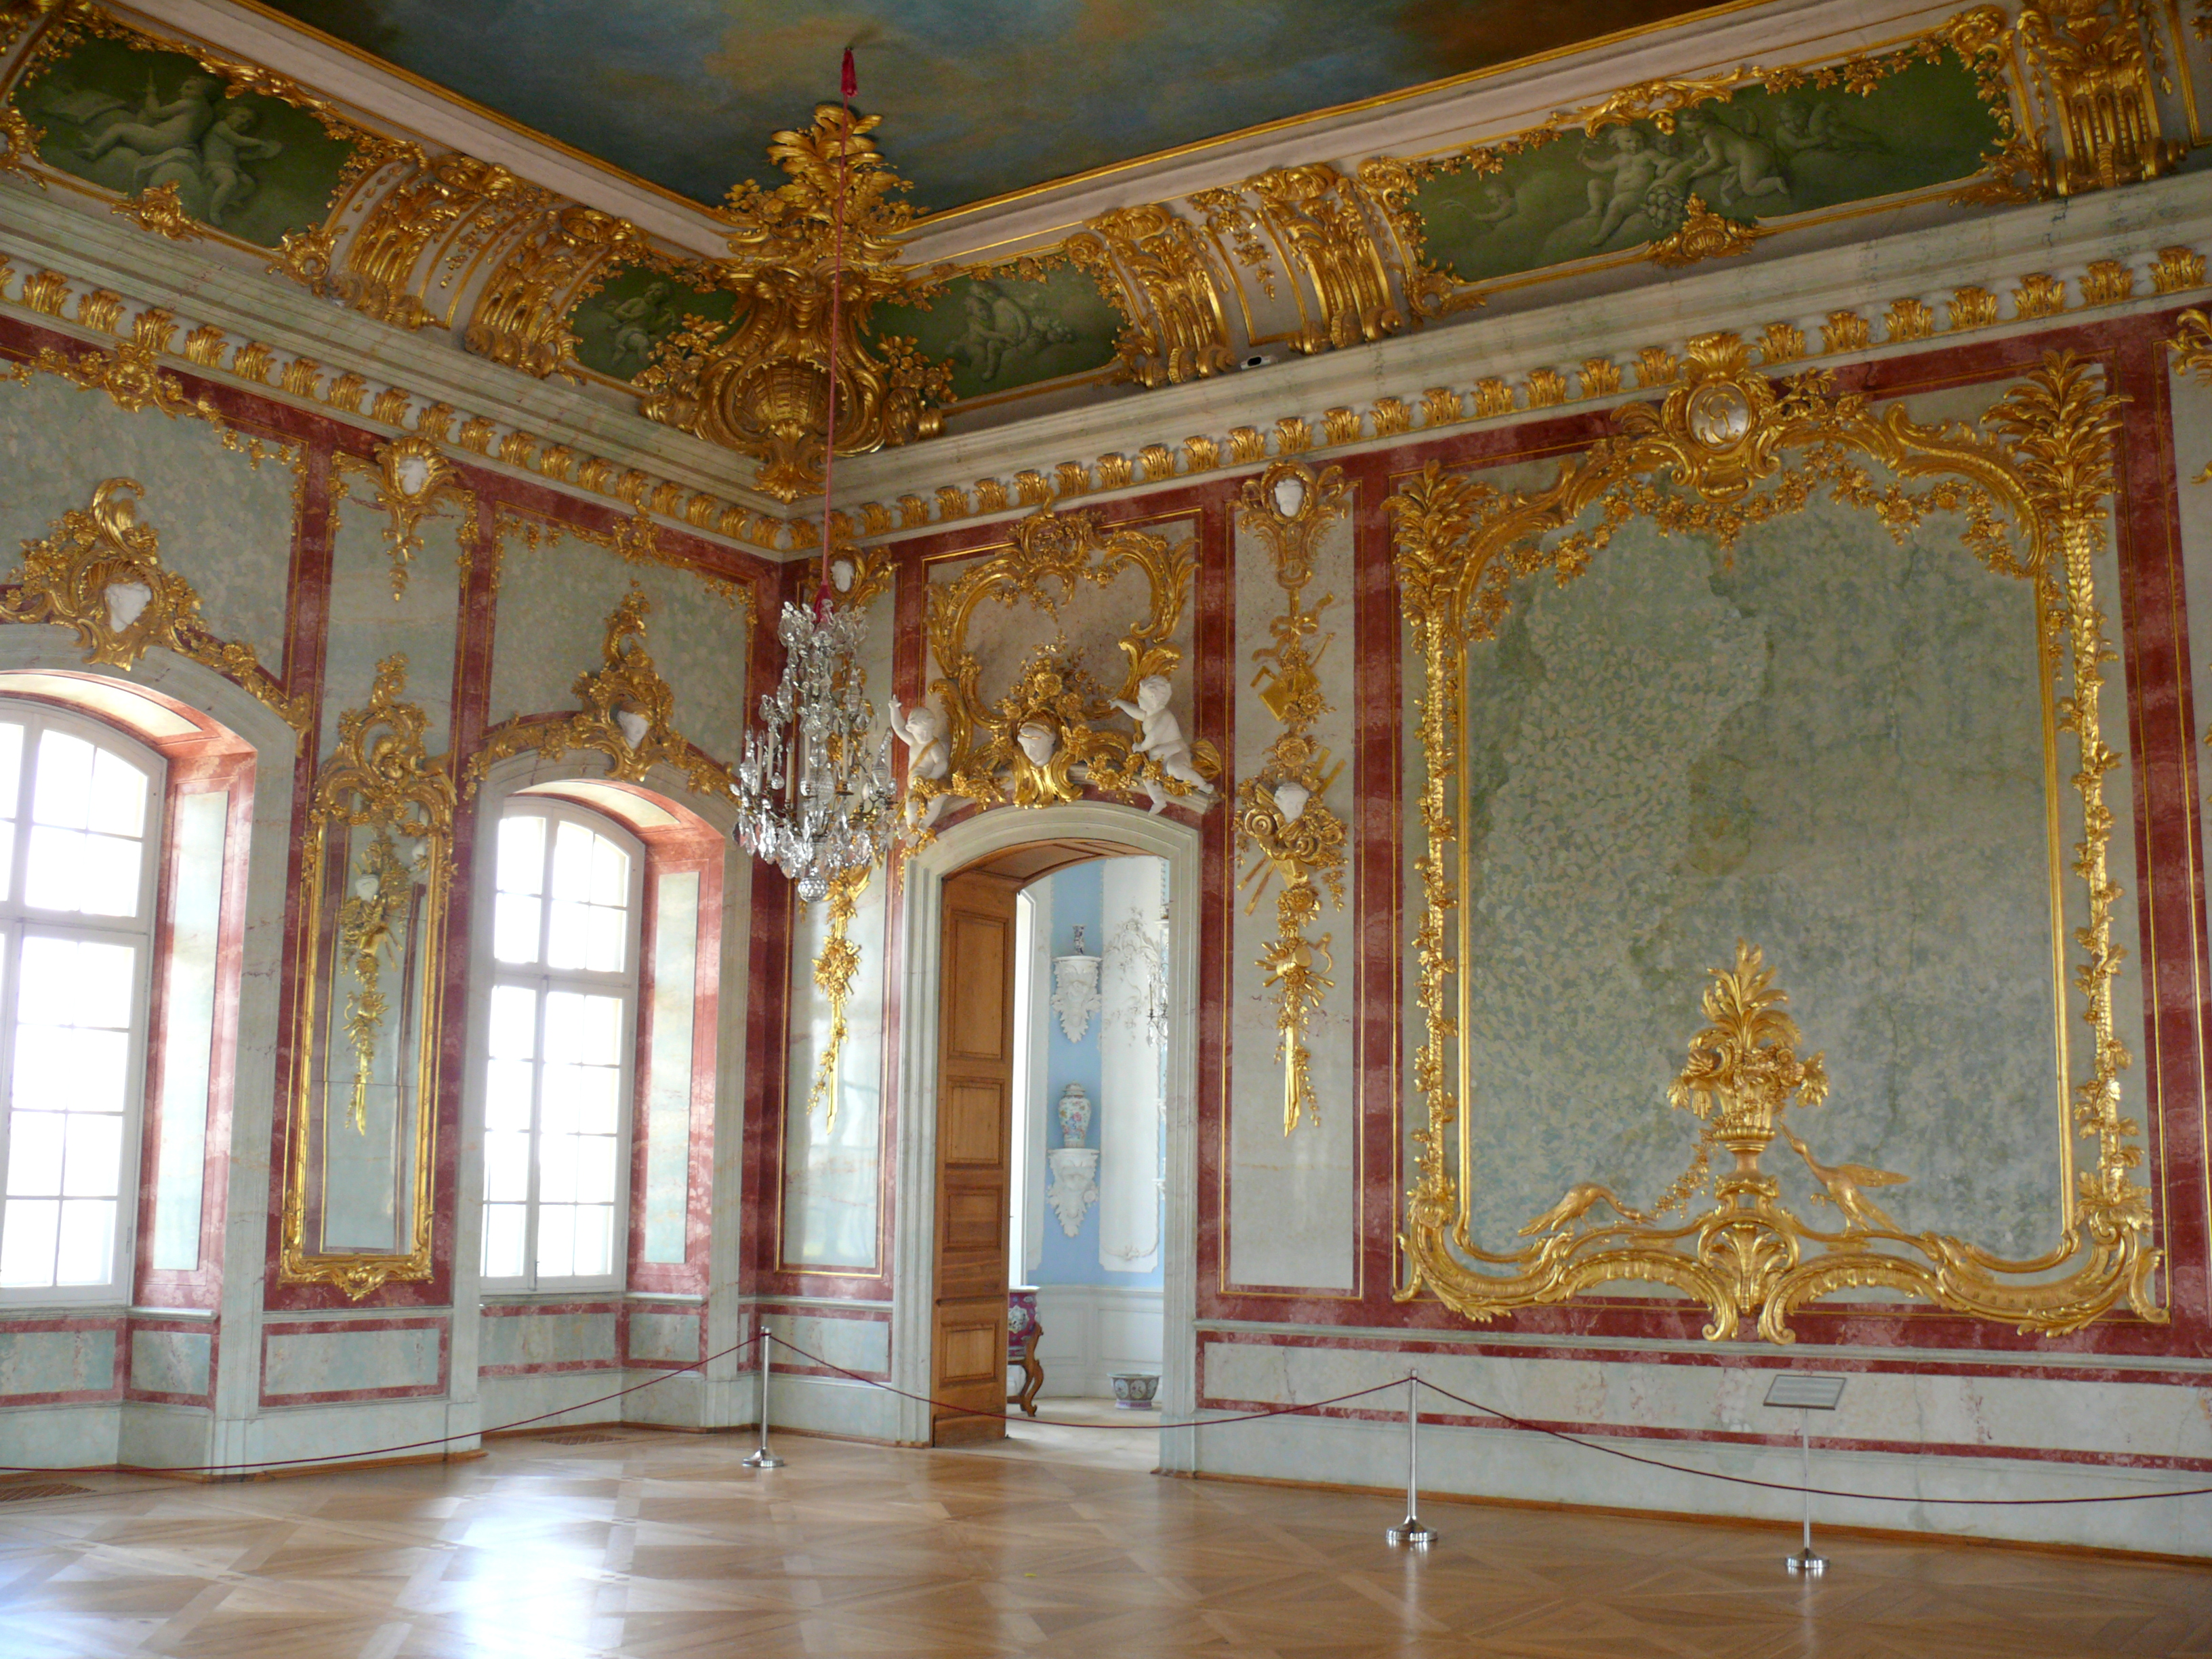 rundāle palace: the hidden gem of latvia - l' essenziale